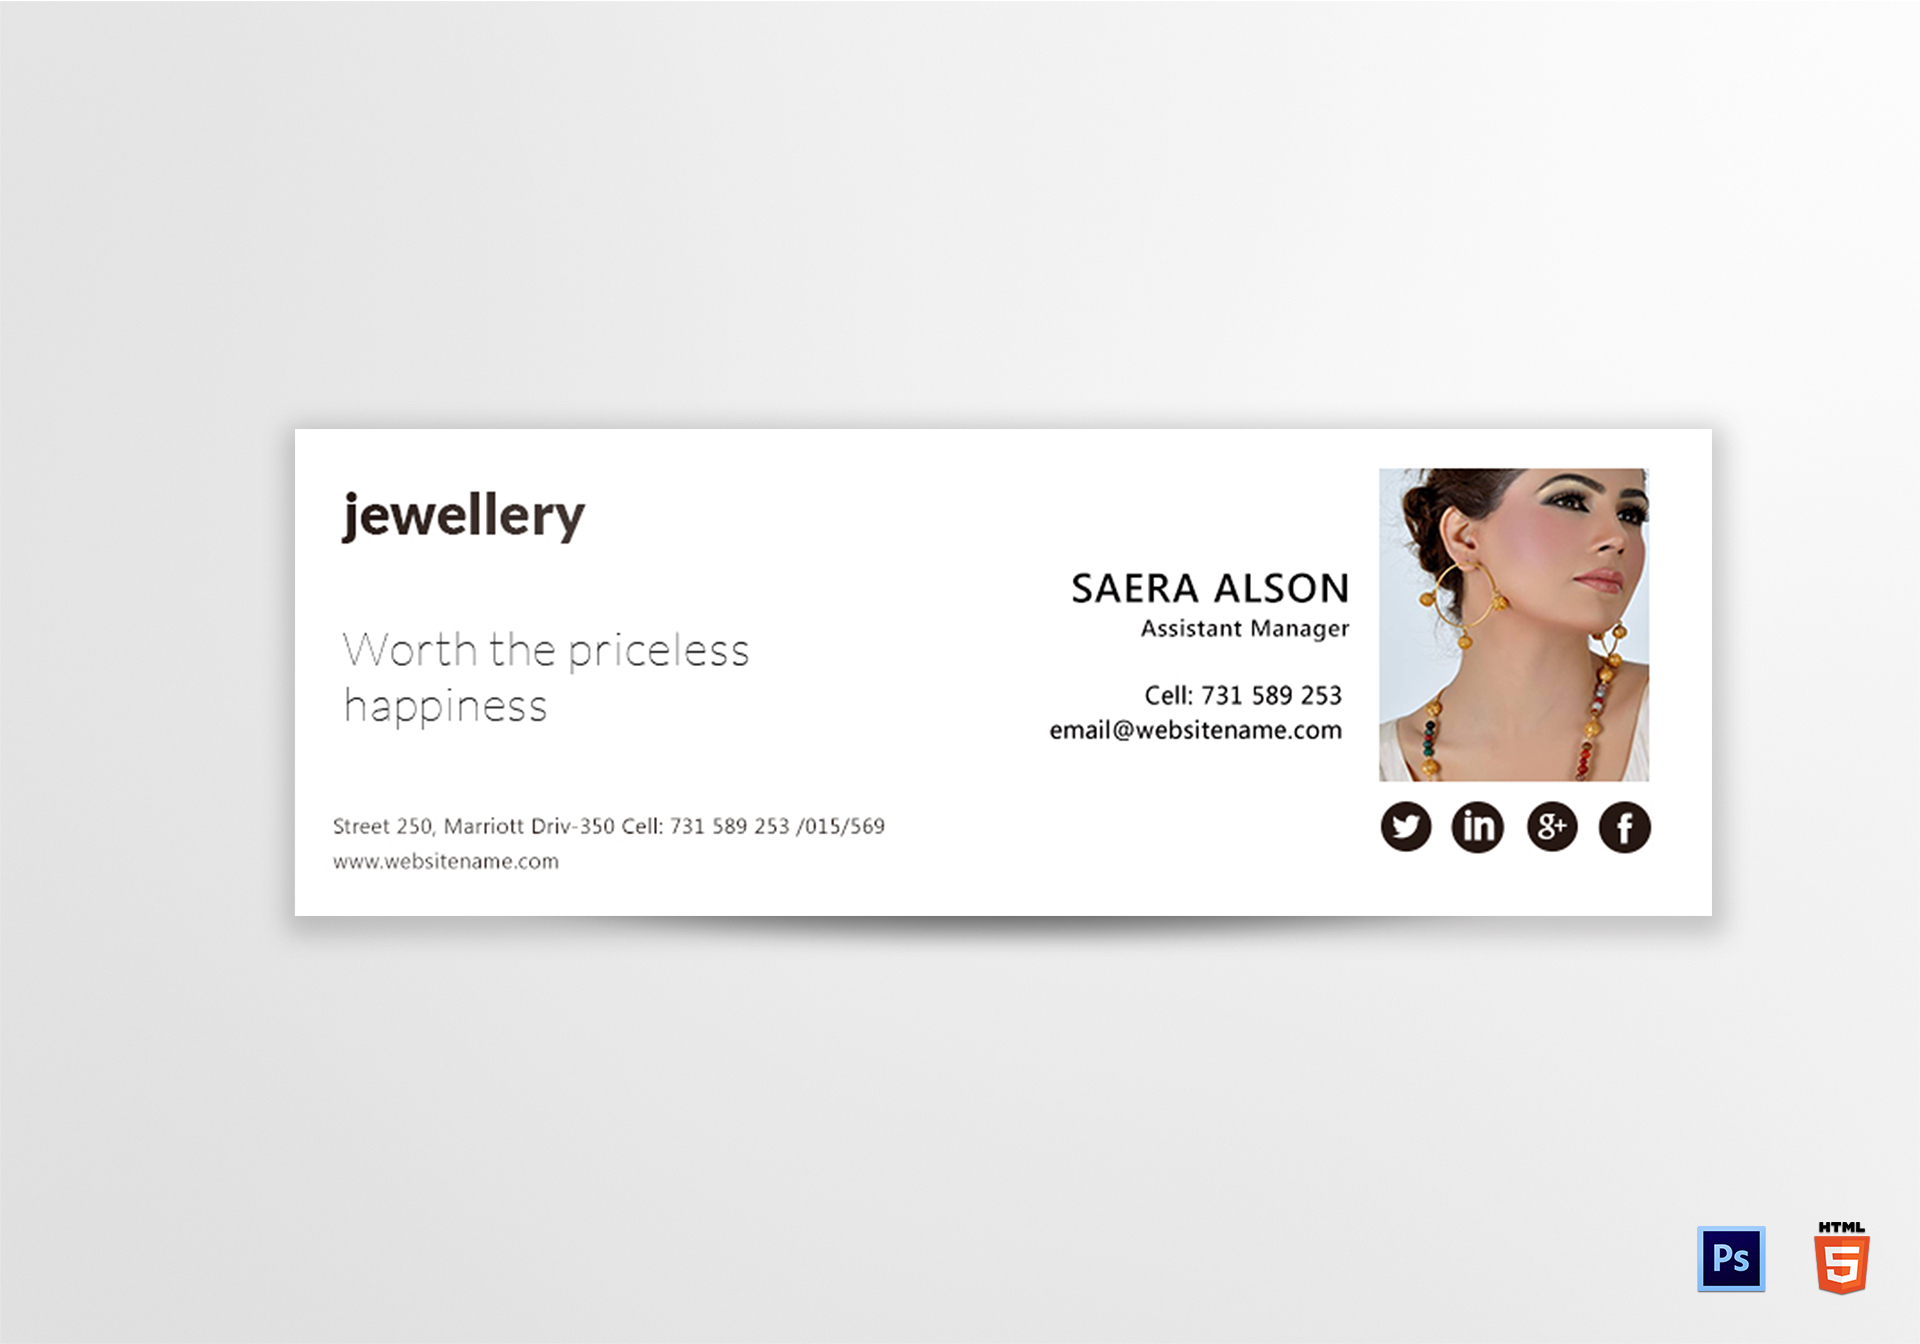 Jewellery Email Signature Template